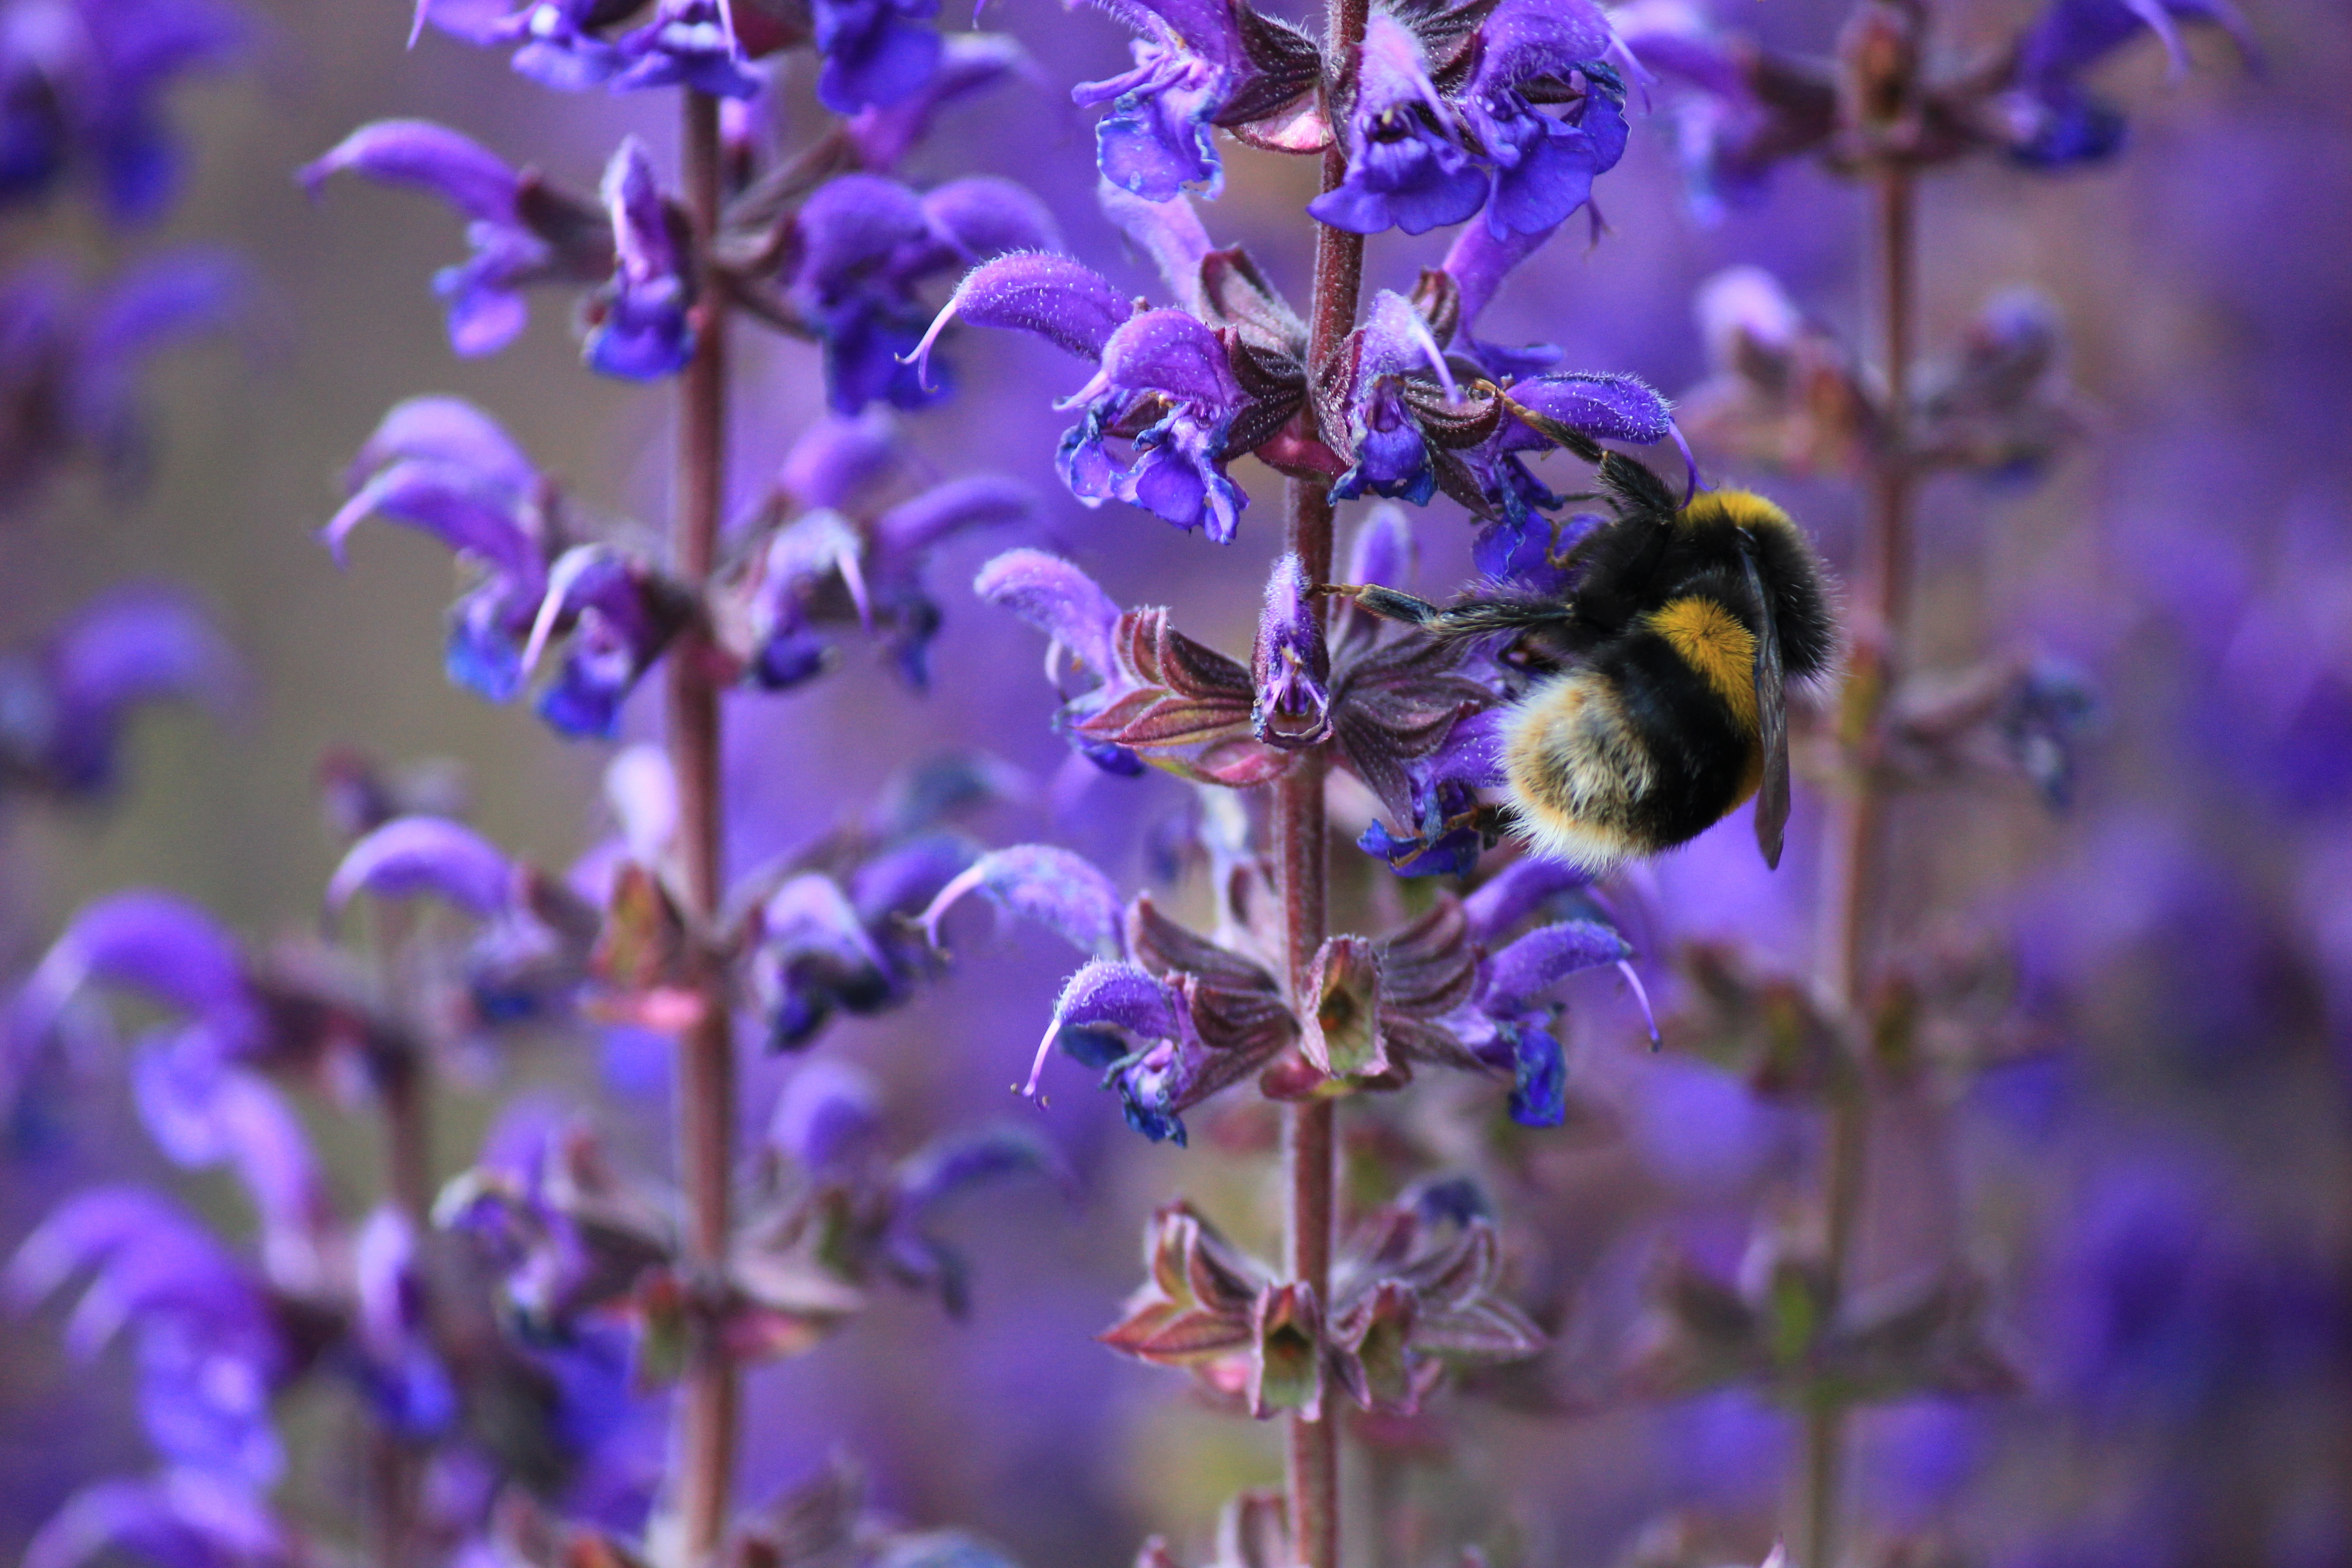 Image: Bumblebee, collects, nectar, flower